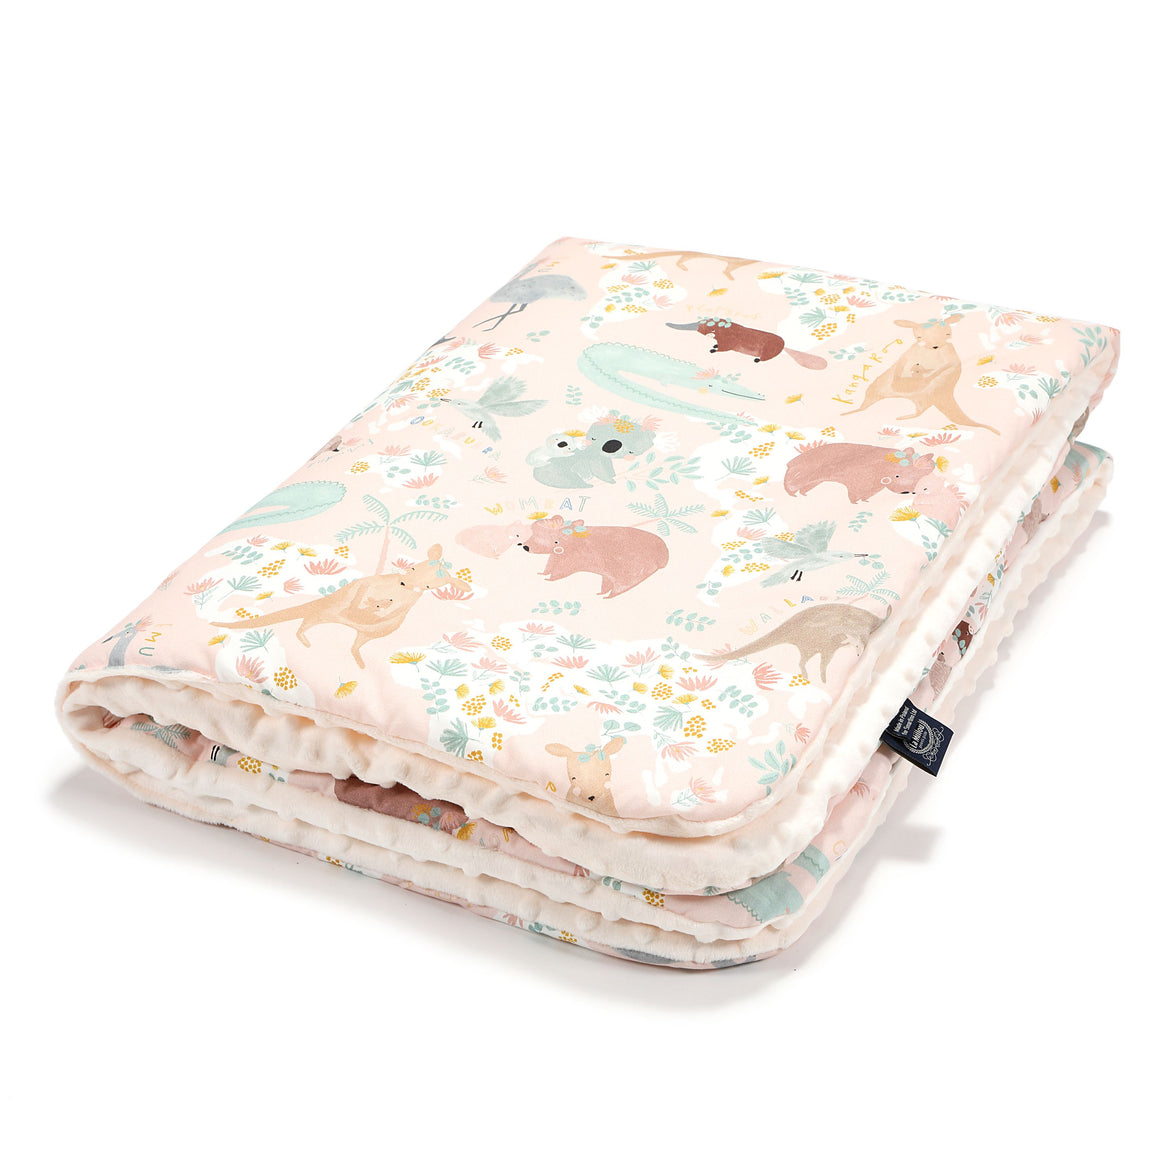 MEDIUM BLANKET peitto - Dundee & Friends Pink | Ecru